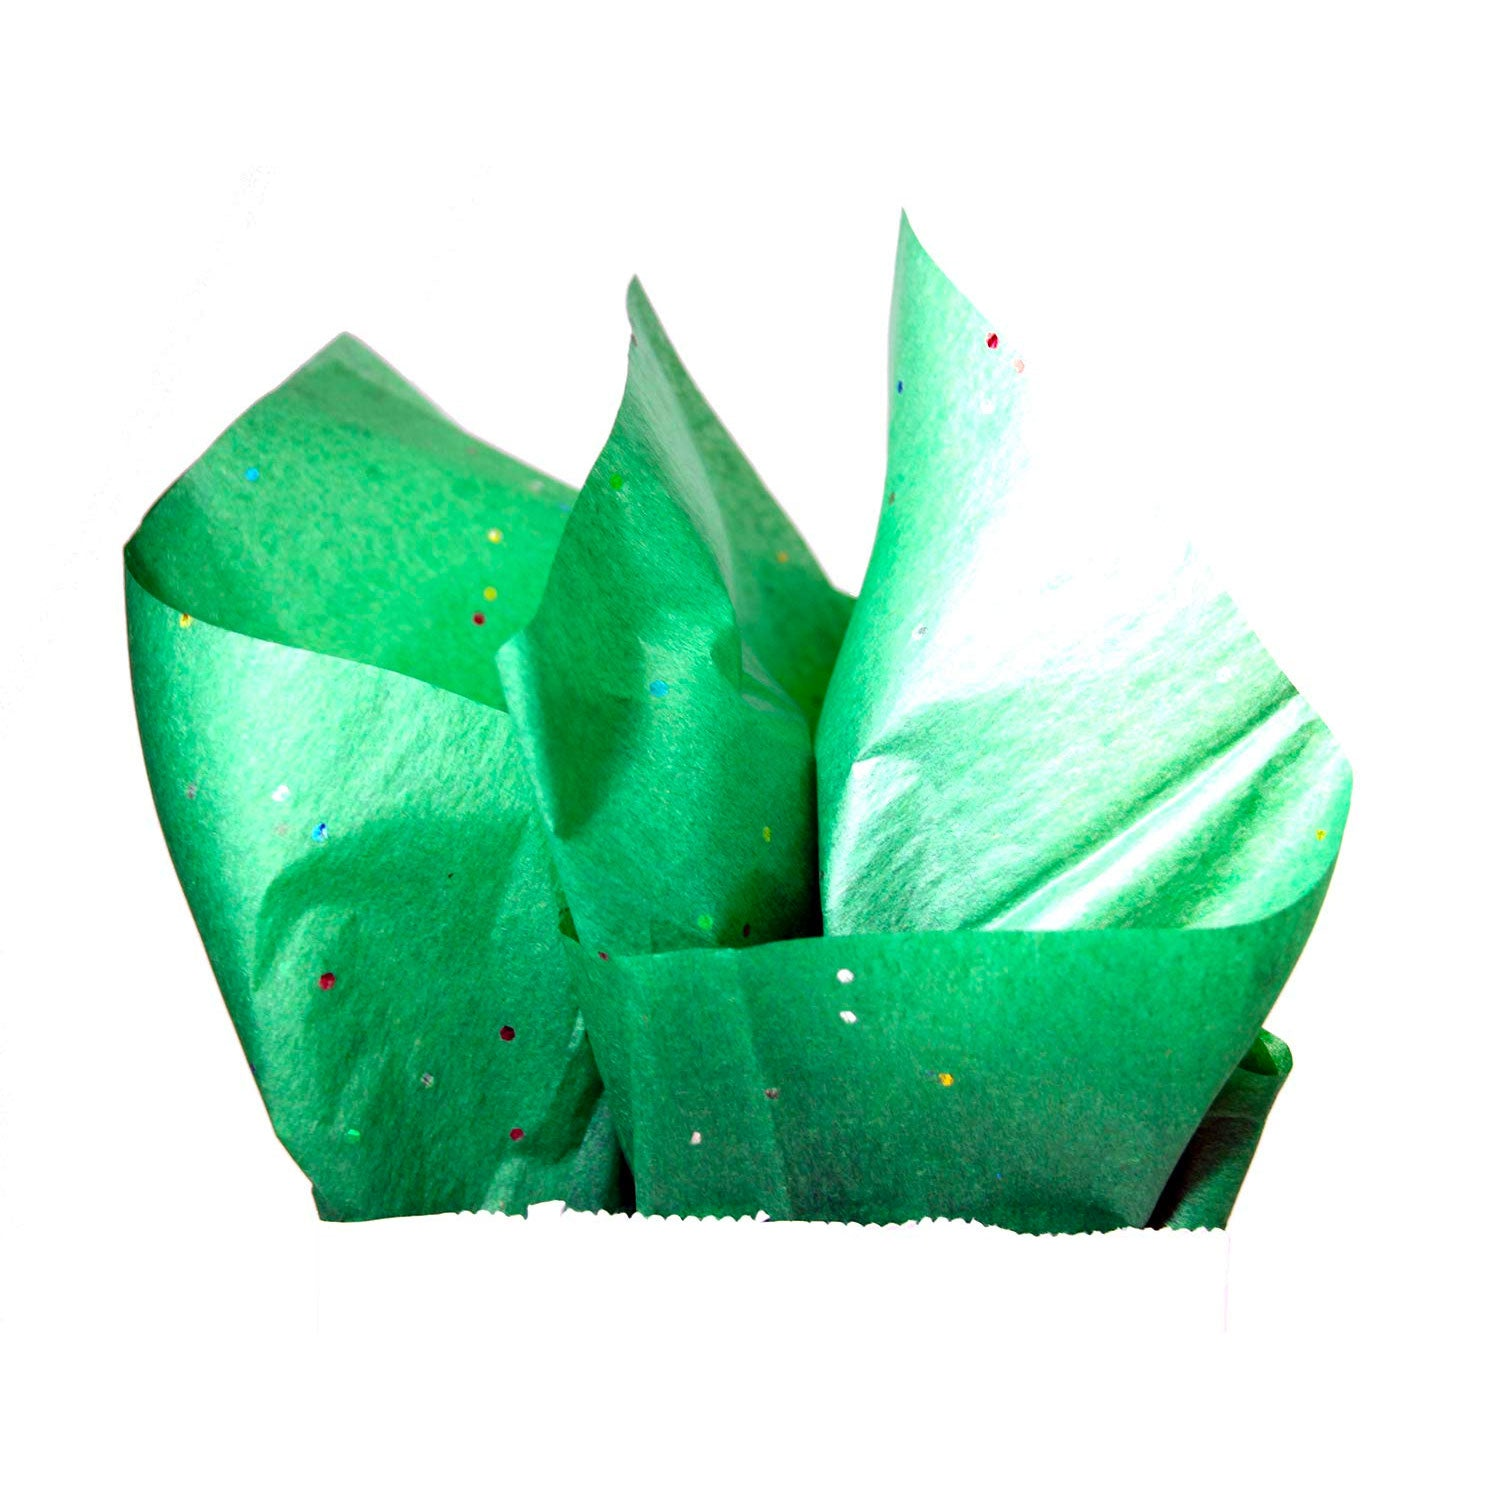 Green sparkle christmas diy tissue paper, Sparkle tissue paper, glitter tissue paper, Bulk gift tissue paper, colored tissue paper, wholesale tissue paper, cheap tissue paper, tissue paper sheets, wrapping tissue, gift tissue, tissue paper packaging,